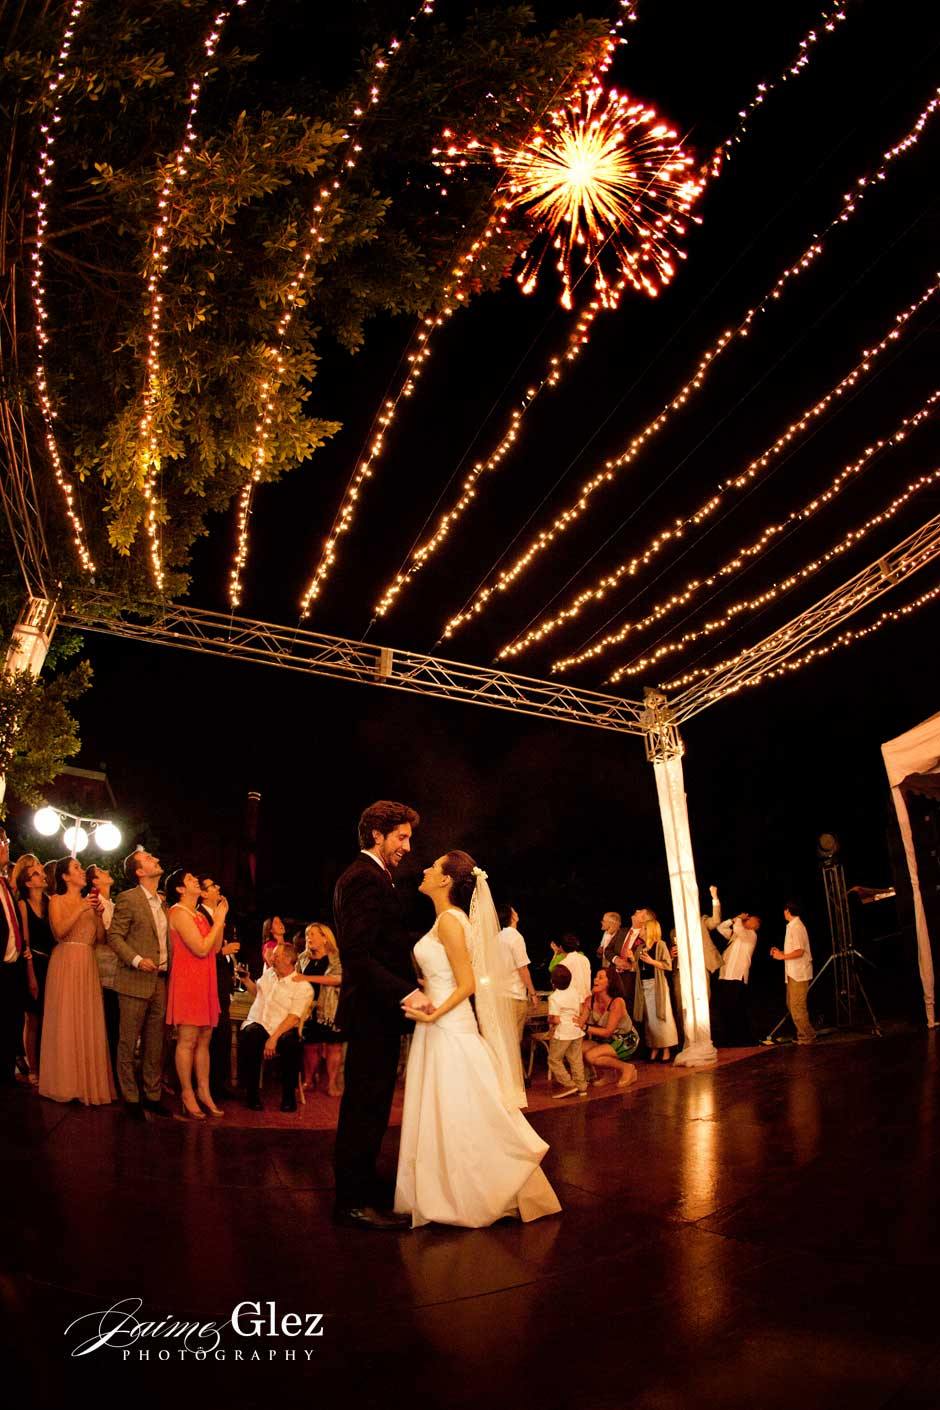 Fireworks during the newlyweds' first dance is unique! Felicidades!